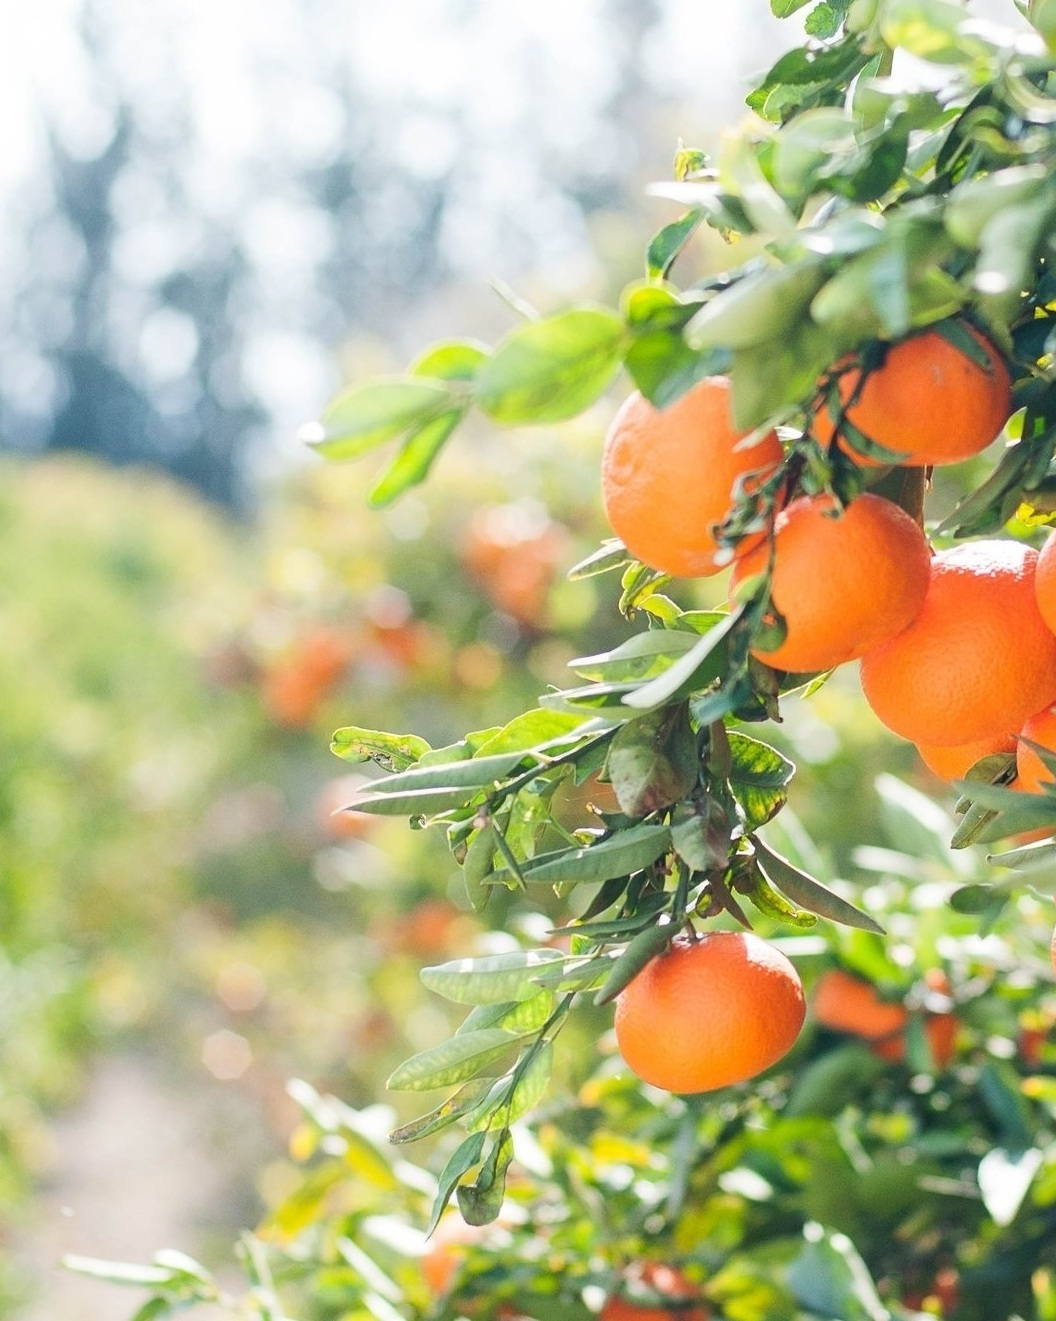 CHINGFORD FRUIT - Focusing on Kiwi and Citrus, a family owned business that has been sourcing some of the finest quality fresh produce for over 50 years. Learn more about Chingford Fruit here